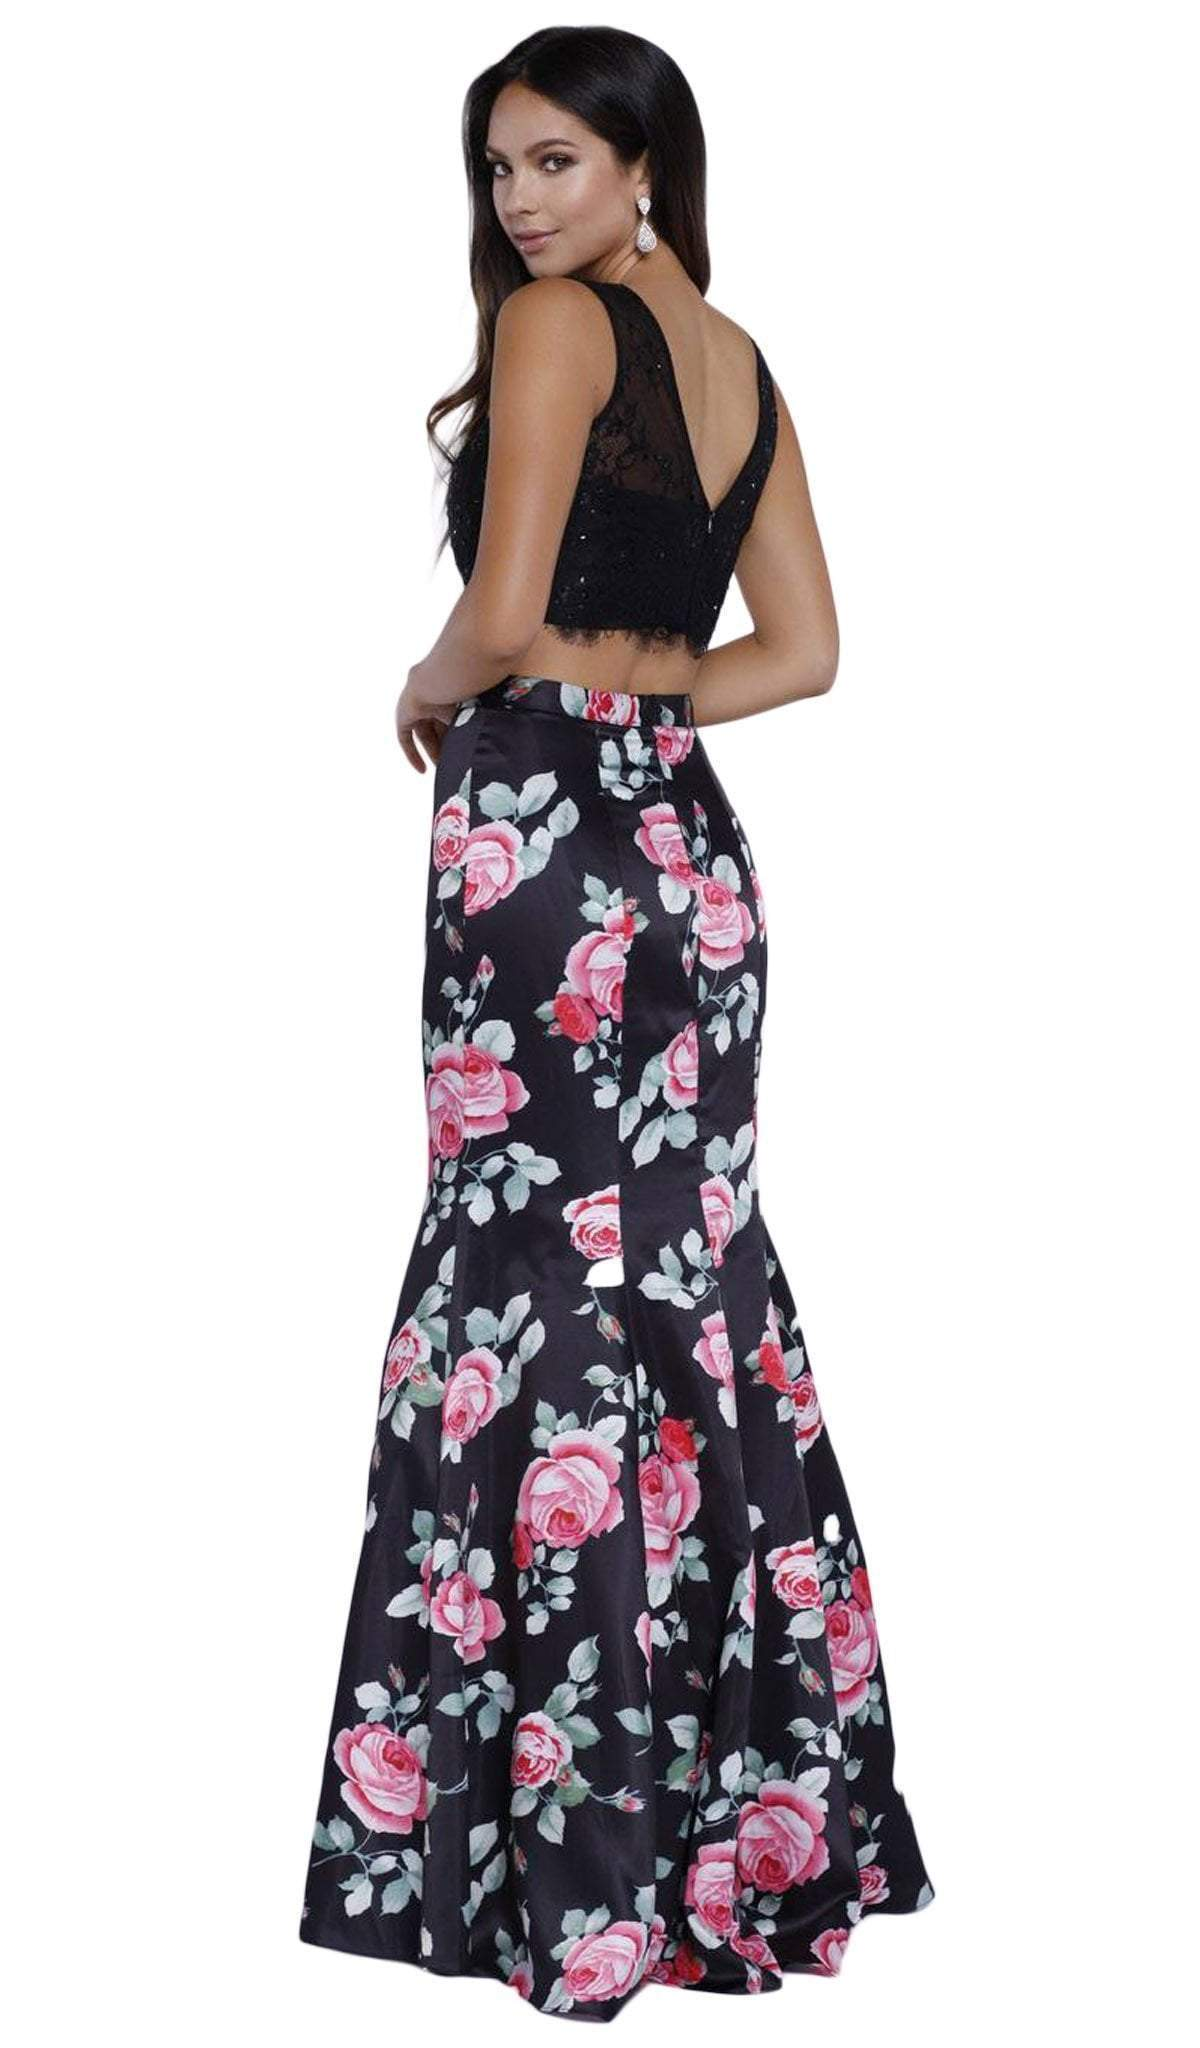 Nox Anabel - Lace And Floral Mermaid Evening Dress 8268SC